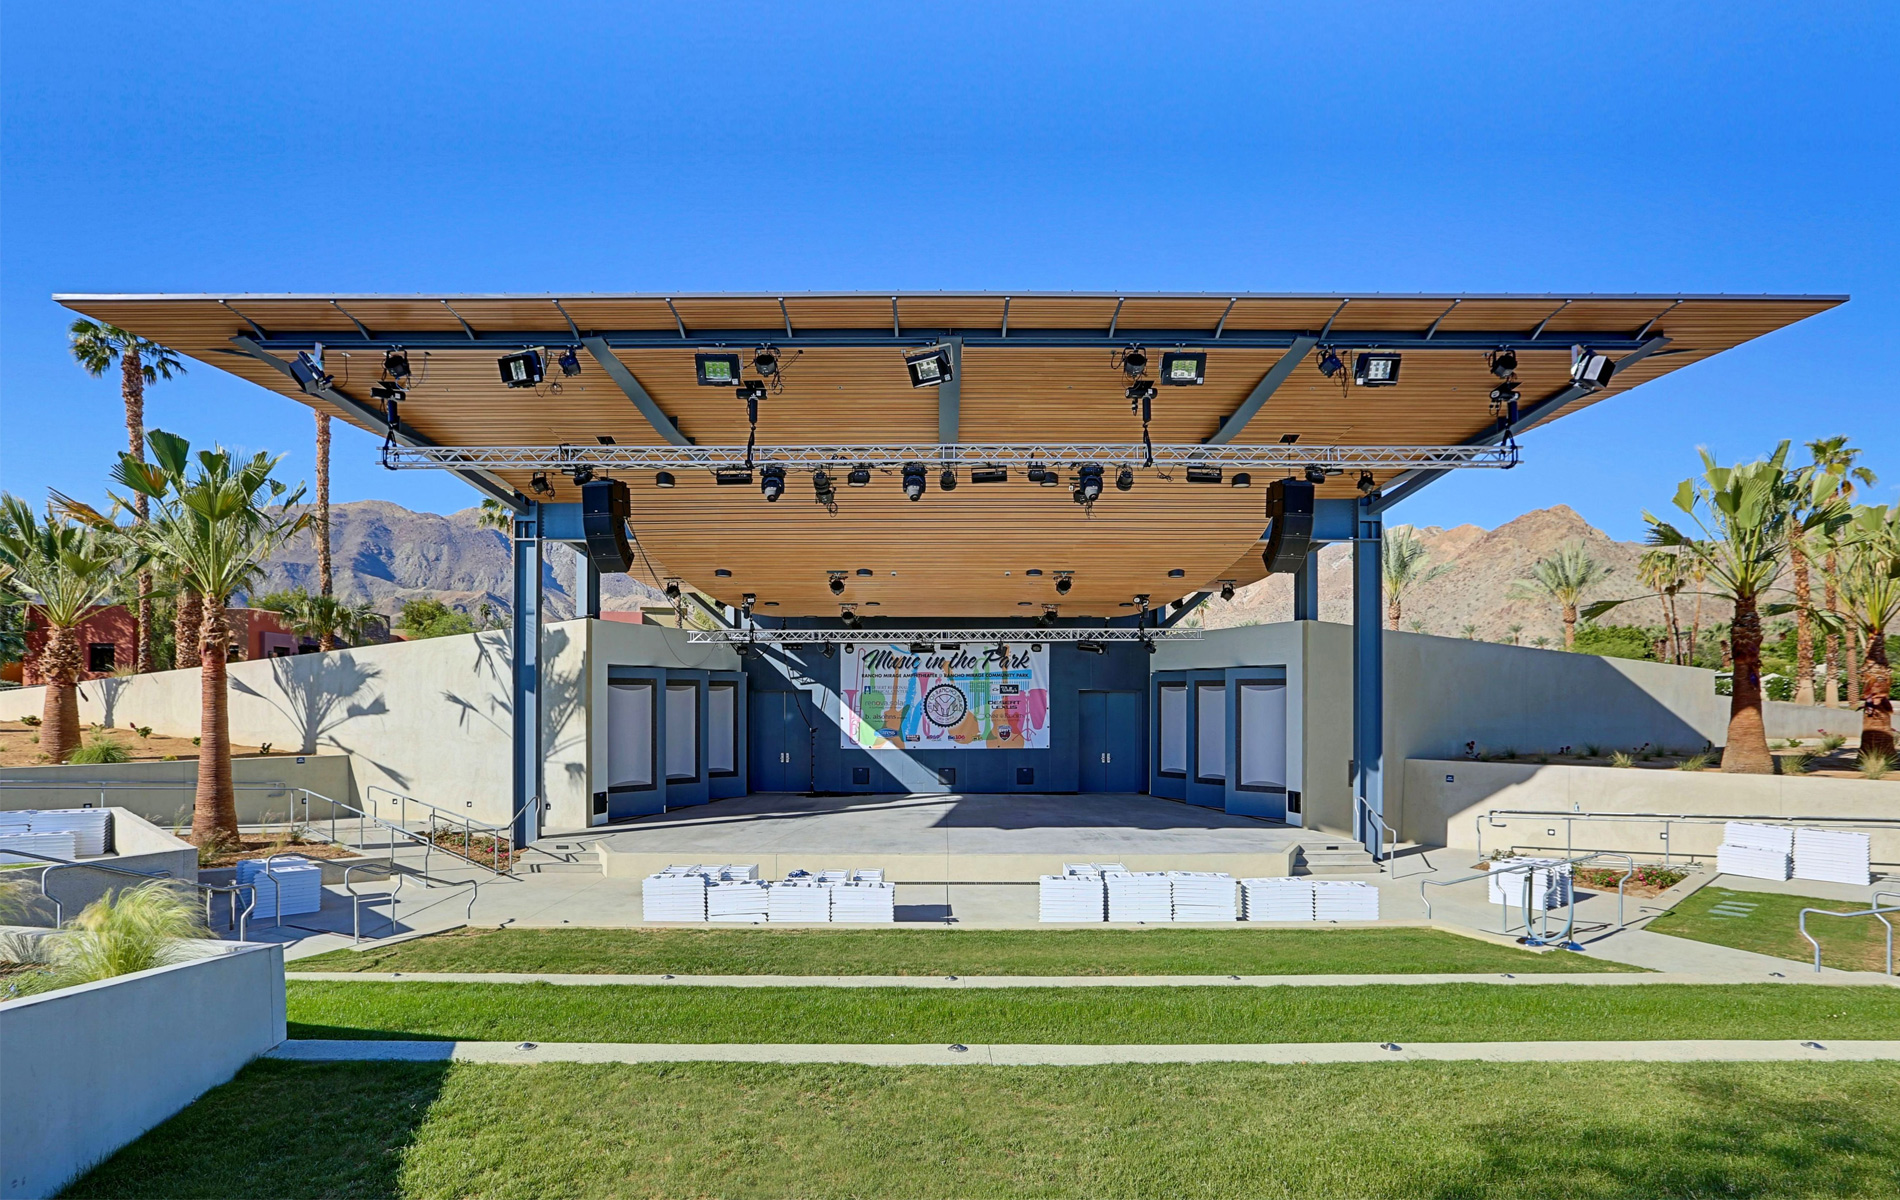 Rancho Mirage Amphitheater Architect